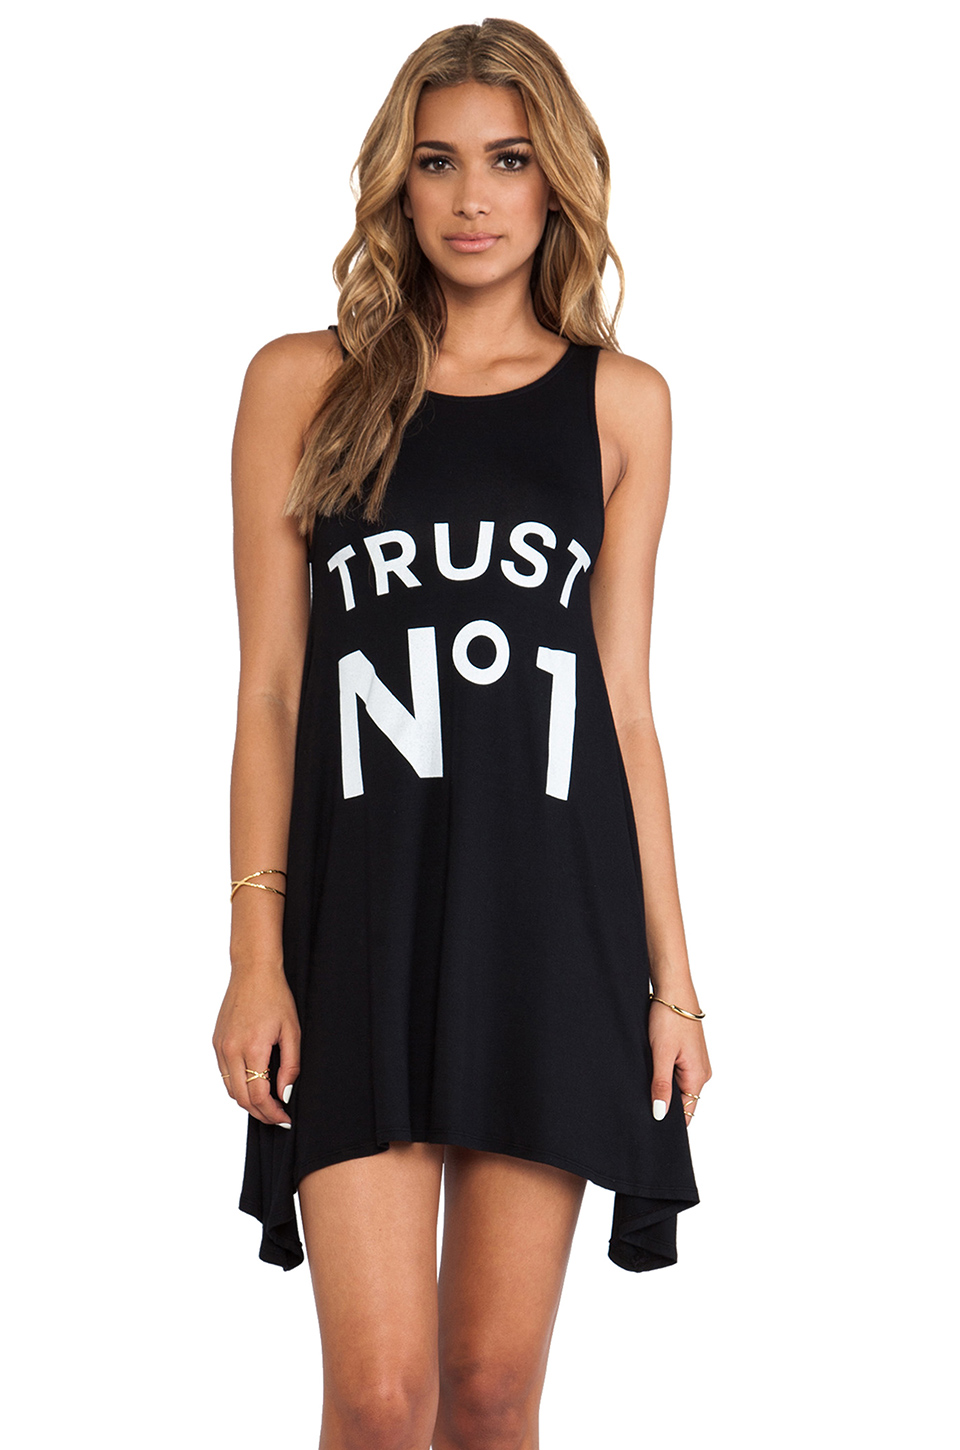 The Laundry Room Trust No 1 Dress in Black | REVOLVE